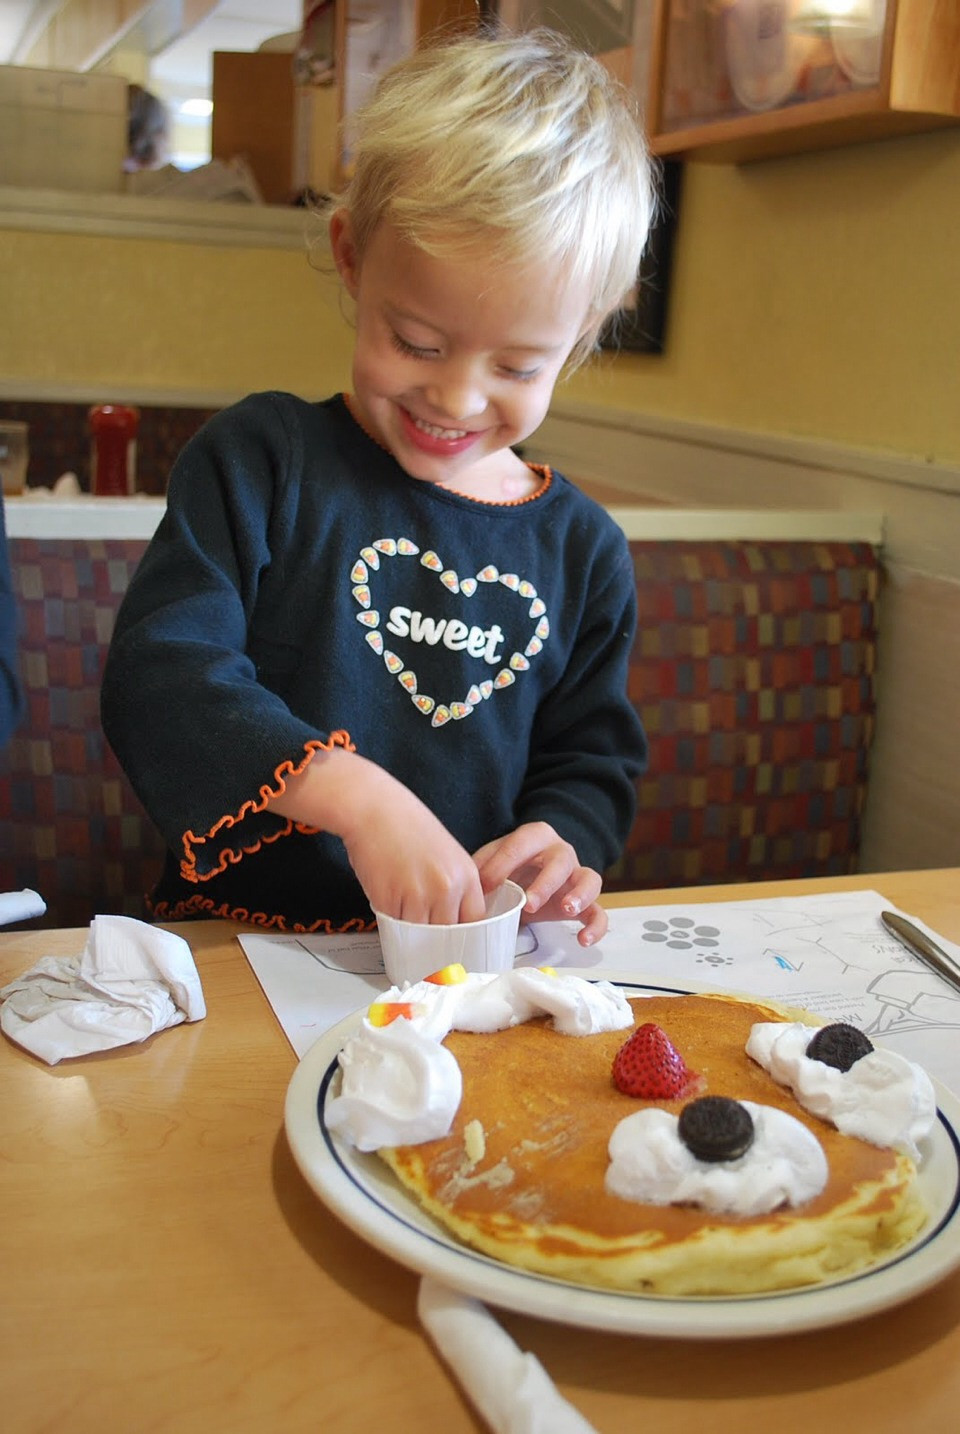 Ihop Halloween Free Pancakes 2019  Halloween Special For Kids at IHOP by Lindsey Holmes Musely